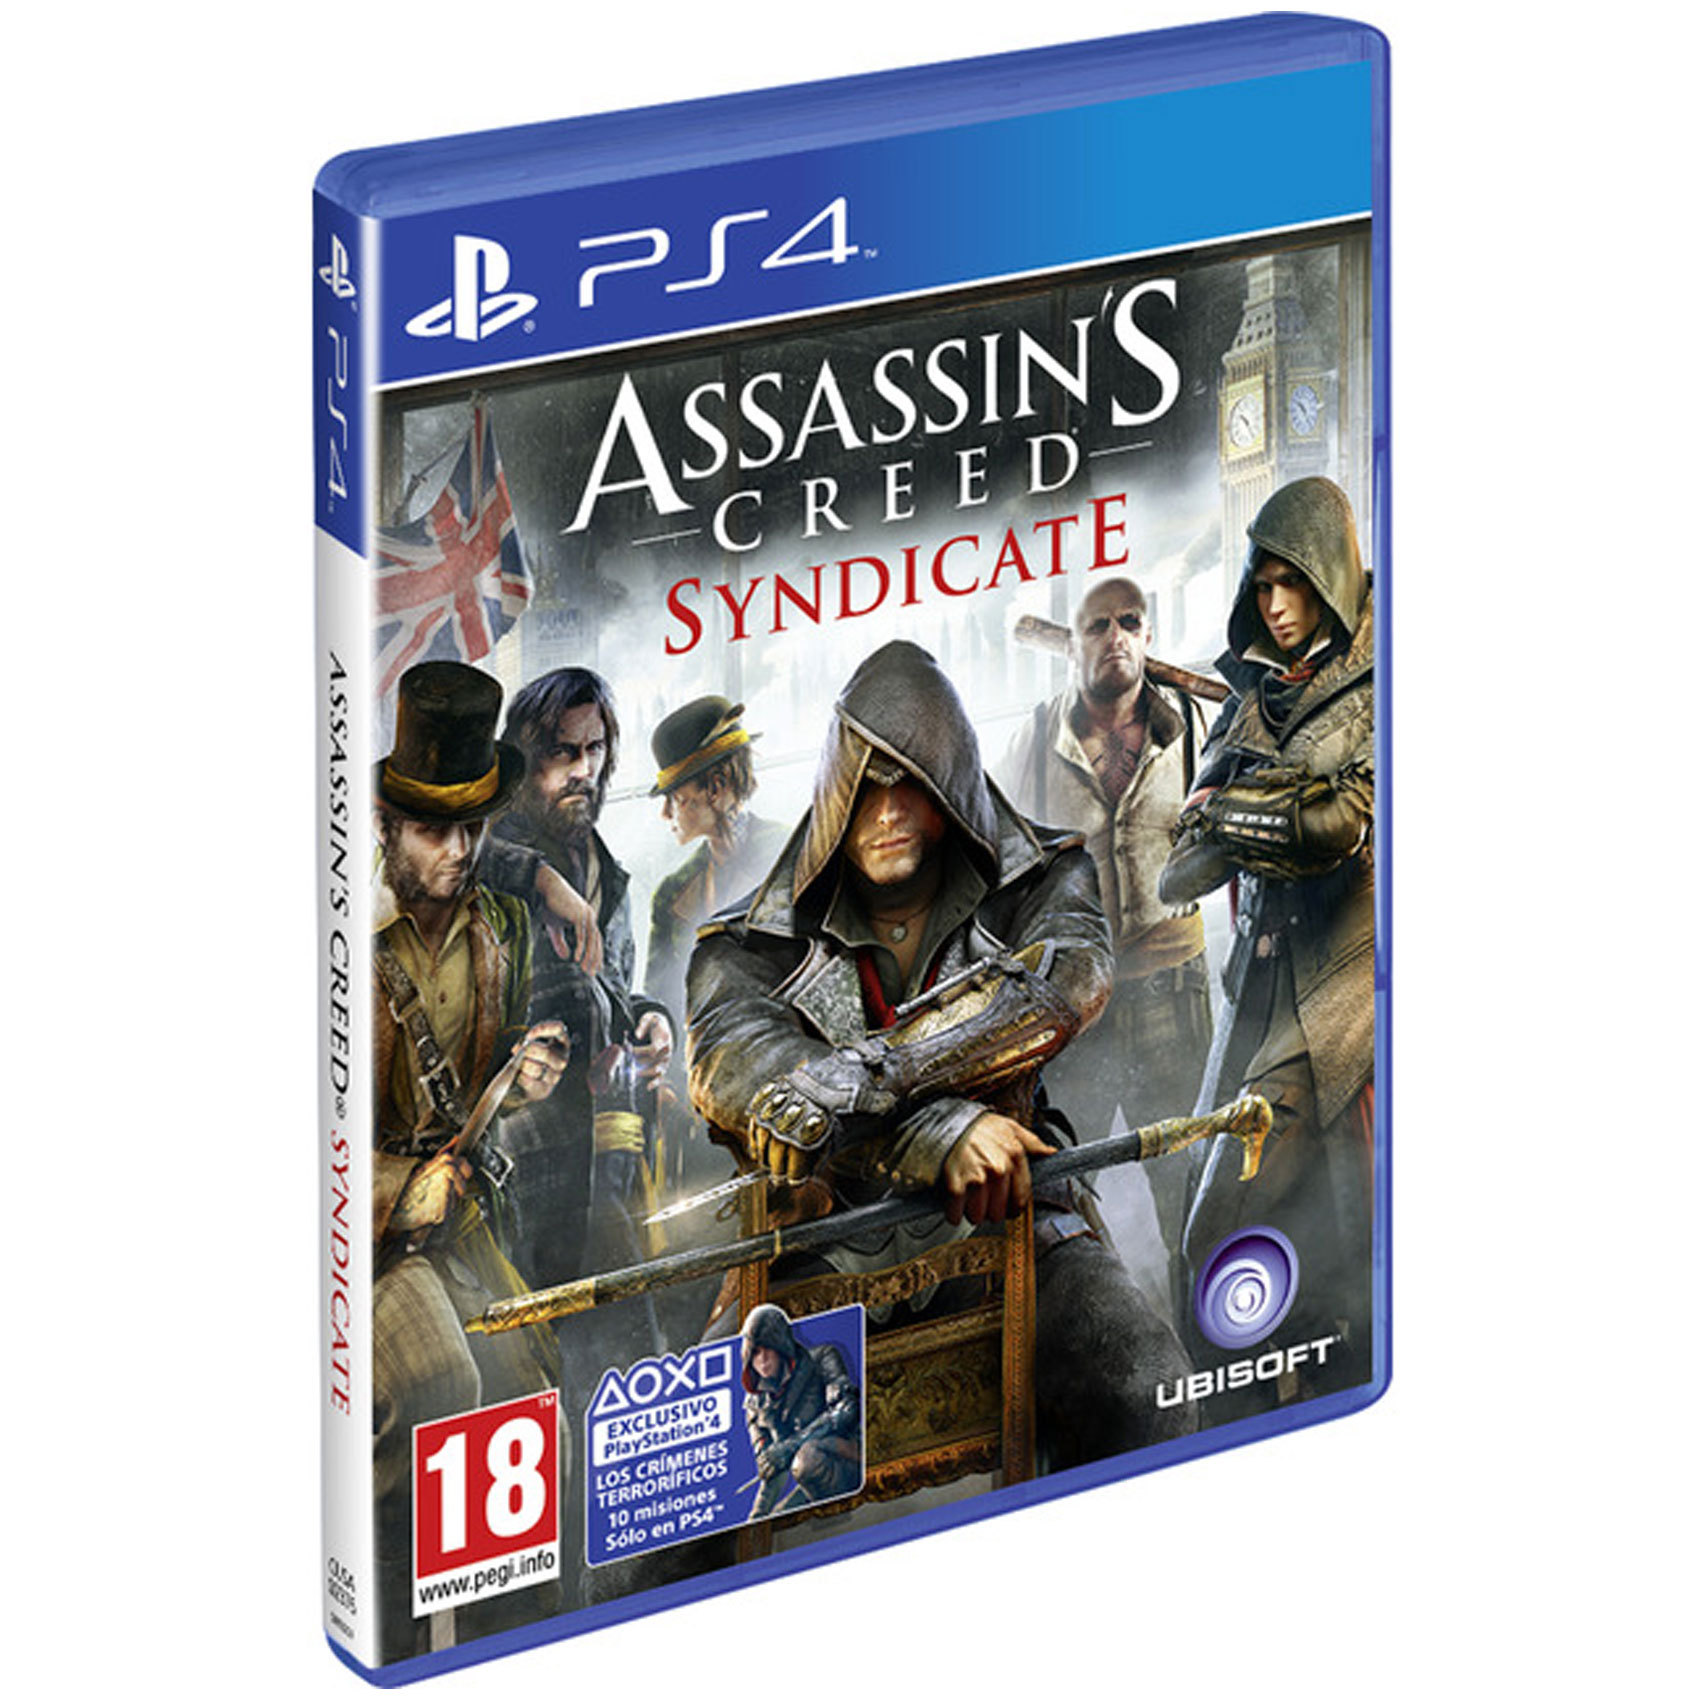 SONY PS4 ASSASSINS CREED SYNDICA SP